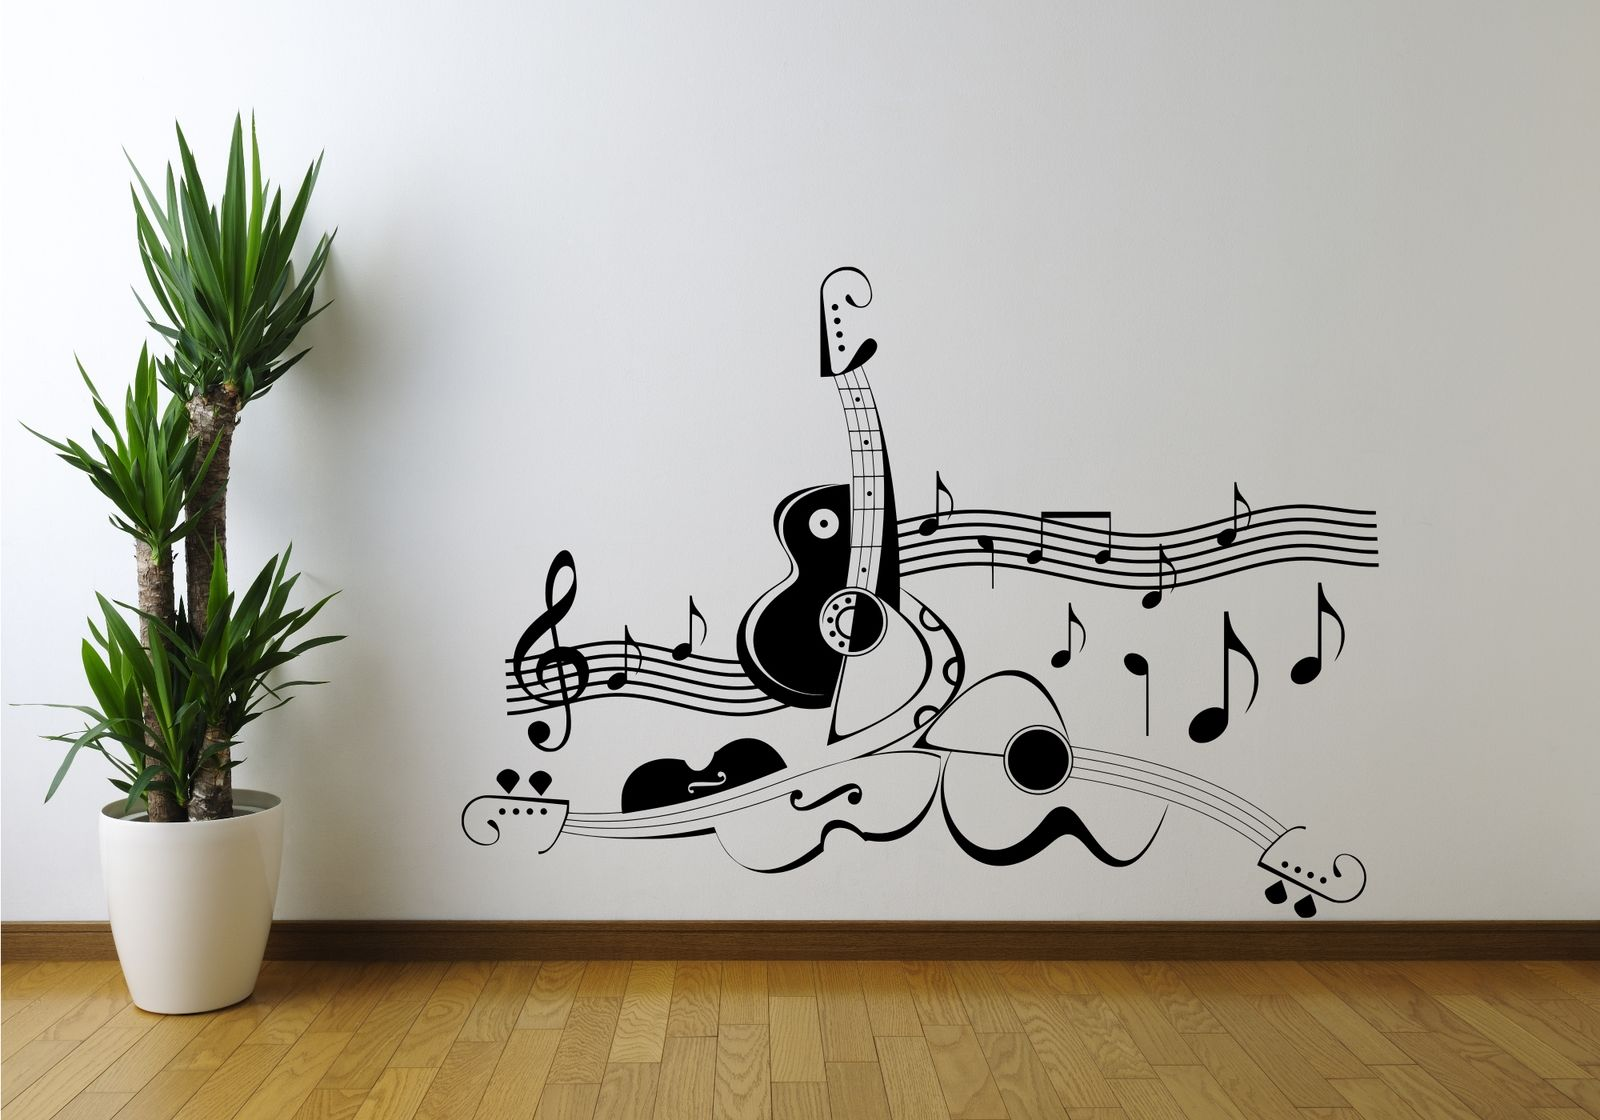 guitar music note symbol violin wall art sticker decal bamboo tree grass wild jungle wall sticker decal mural